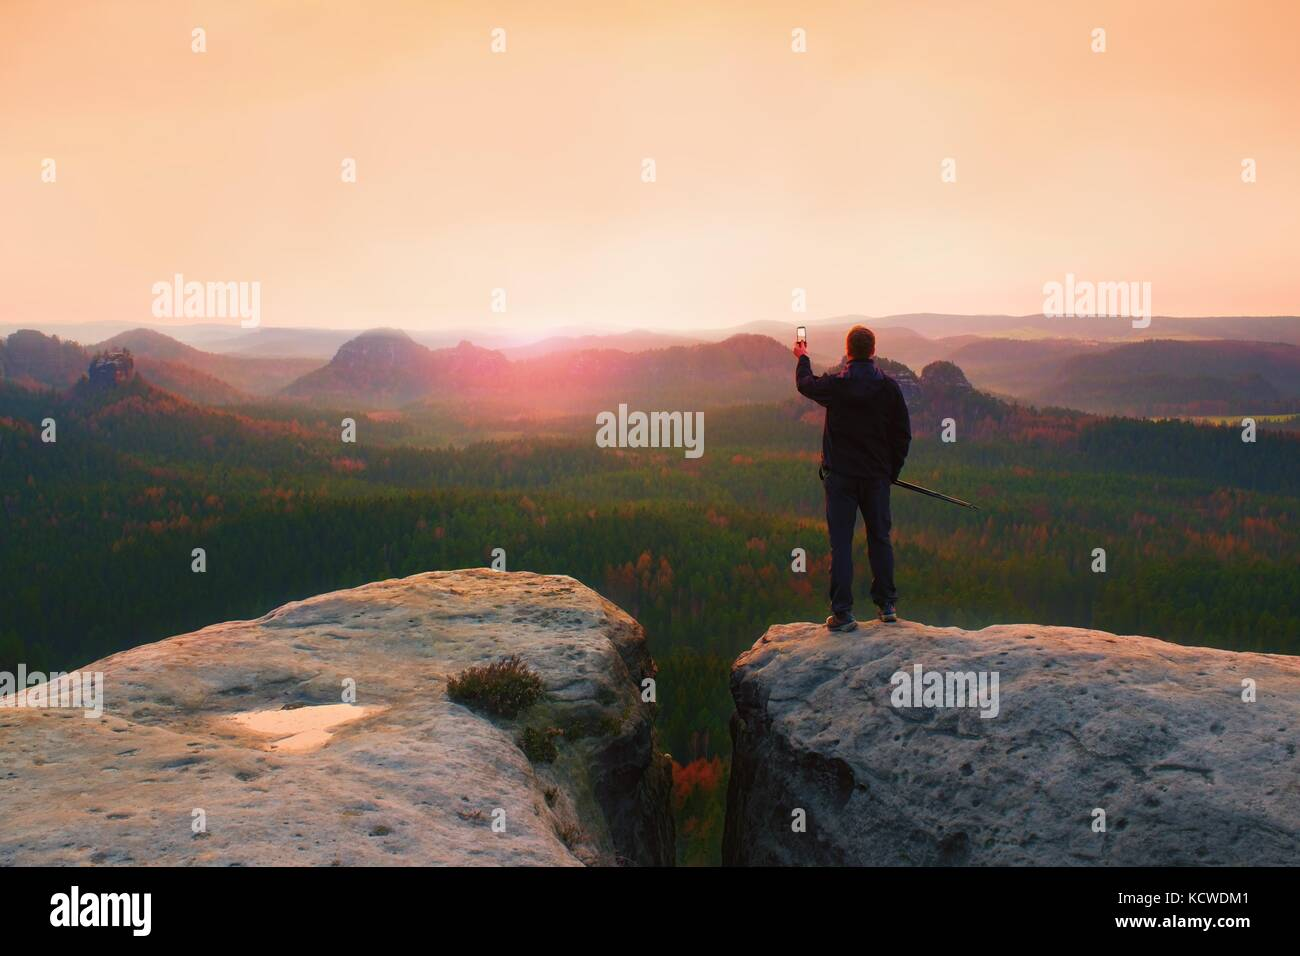 Hiker stand with smart phone on top of mountain and enjoying spring sunrise. Tourist guide with trekking poles. - Stock Image